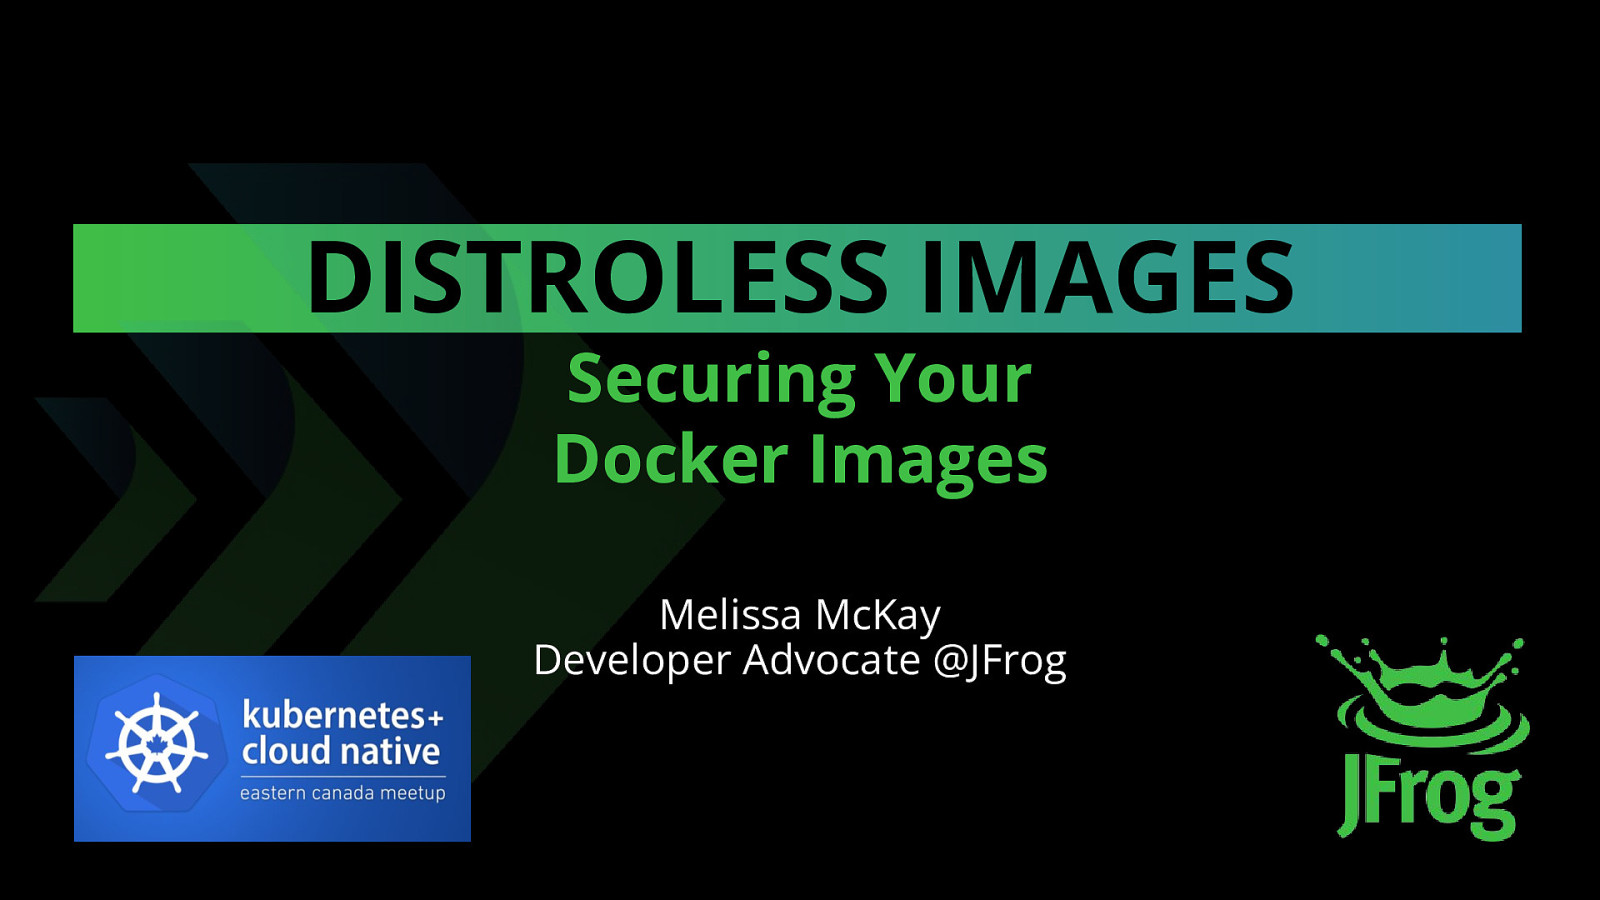 Distroless Docker Images by Melissa McKay